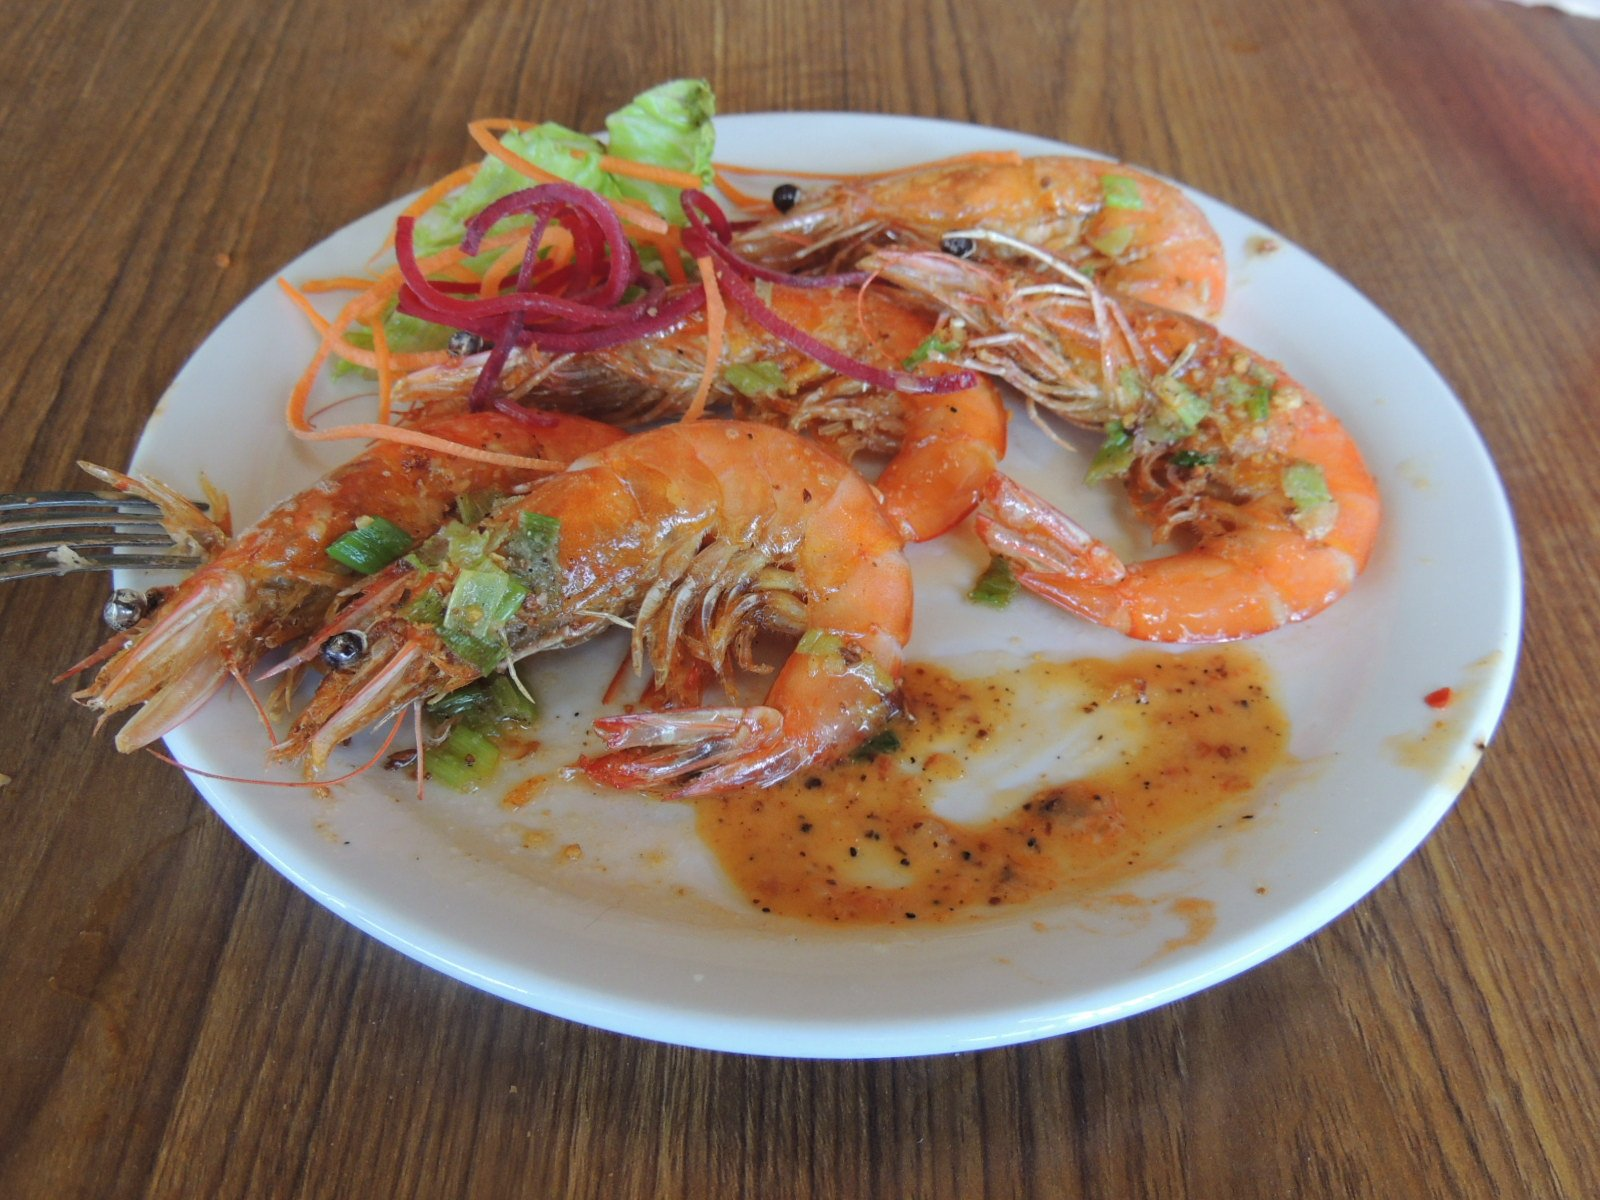 Most Popular Seafood food in Eleele, Hawaii, United States